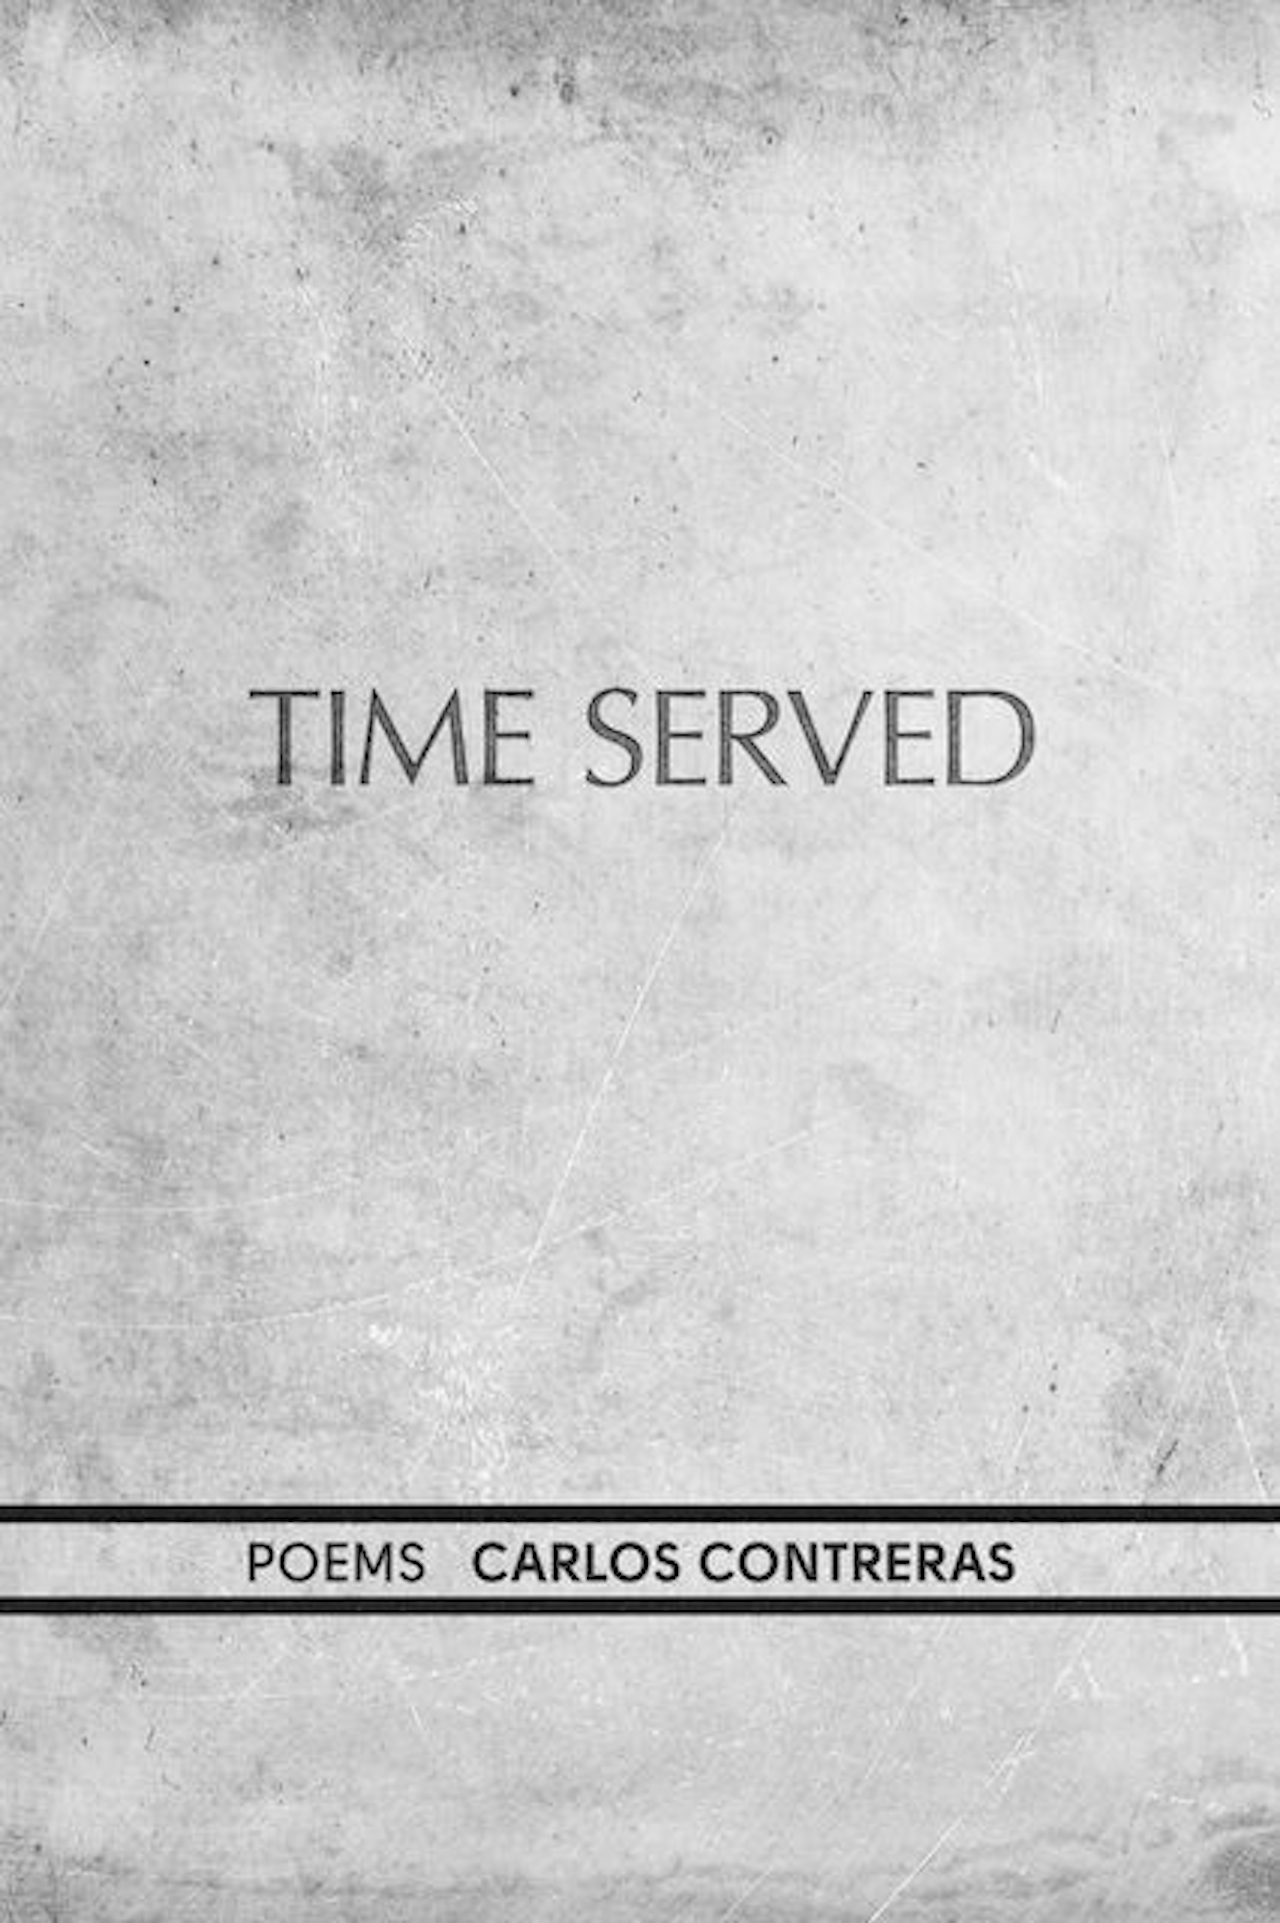 time served cover (click to enlarge)